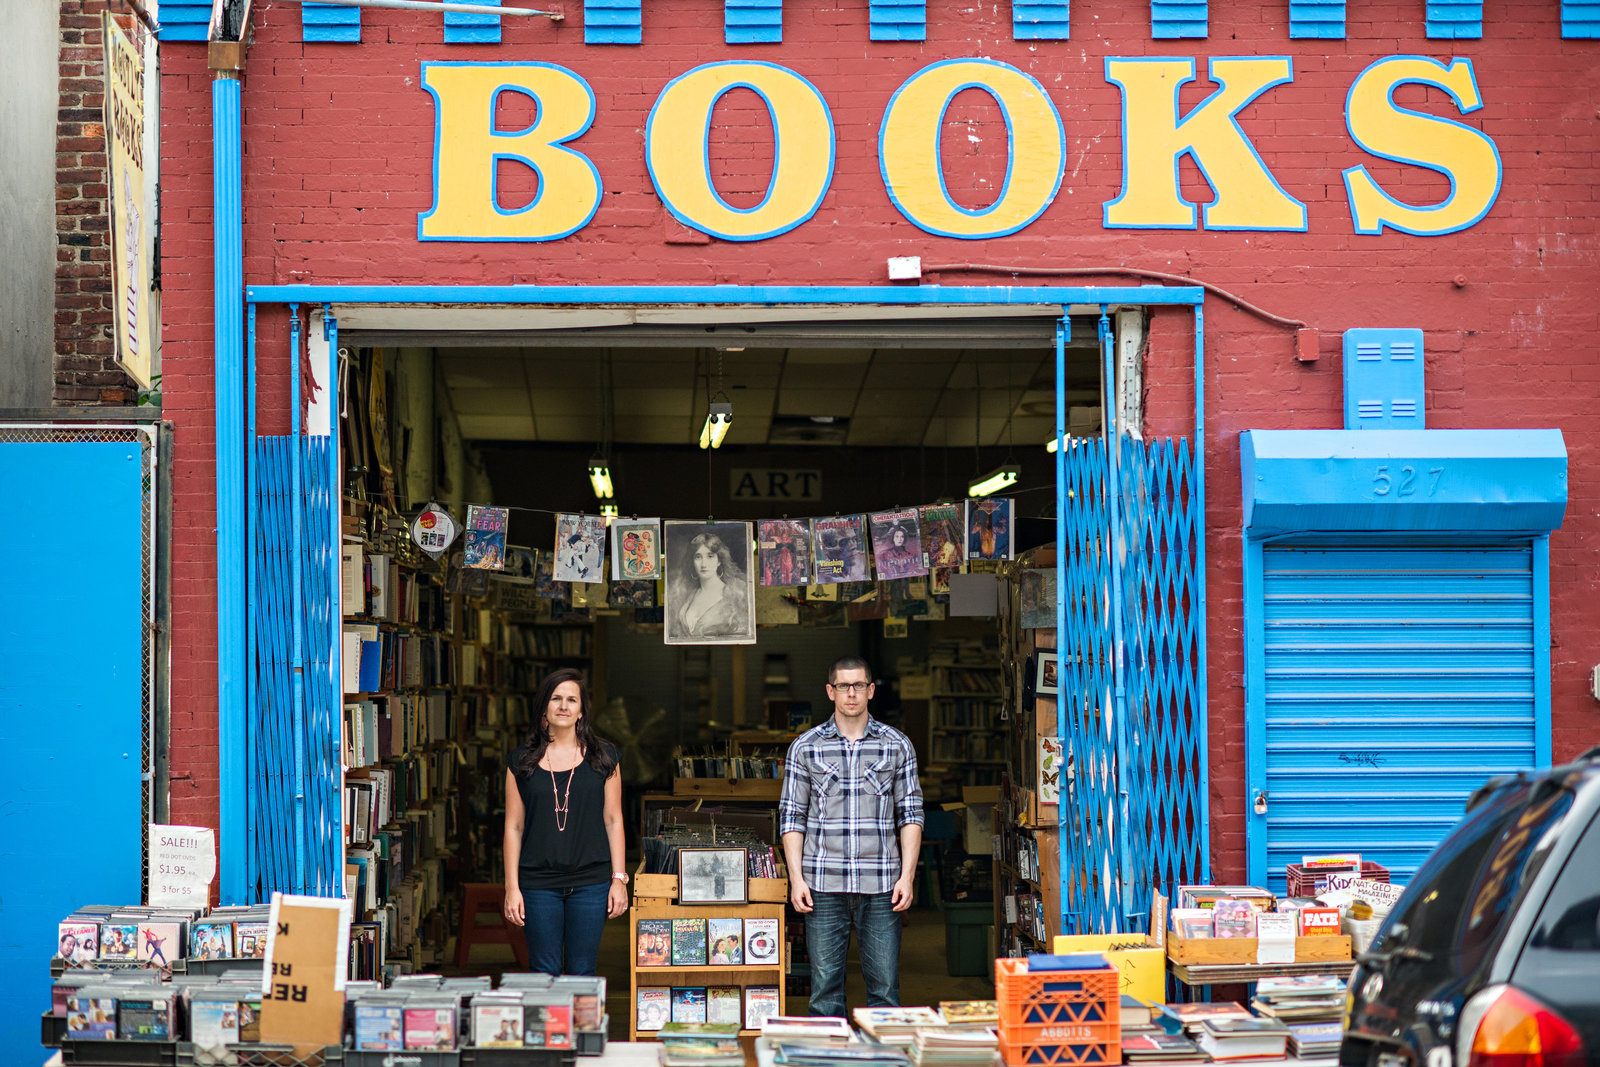 A fun couple standing in the doorway of a south philly bookstore.